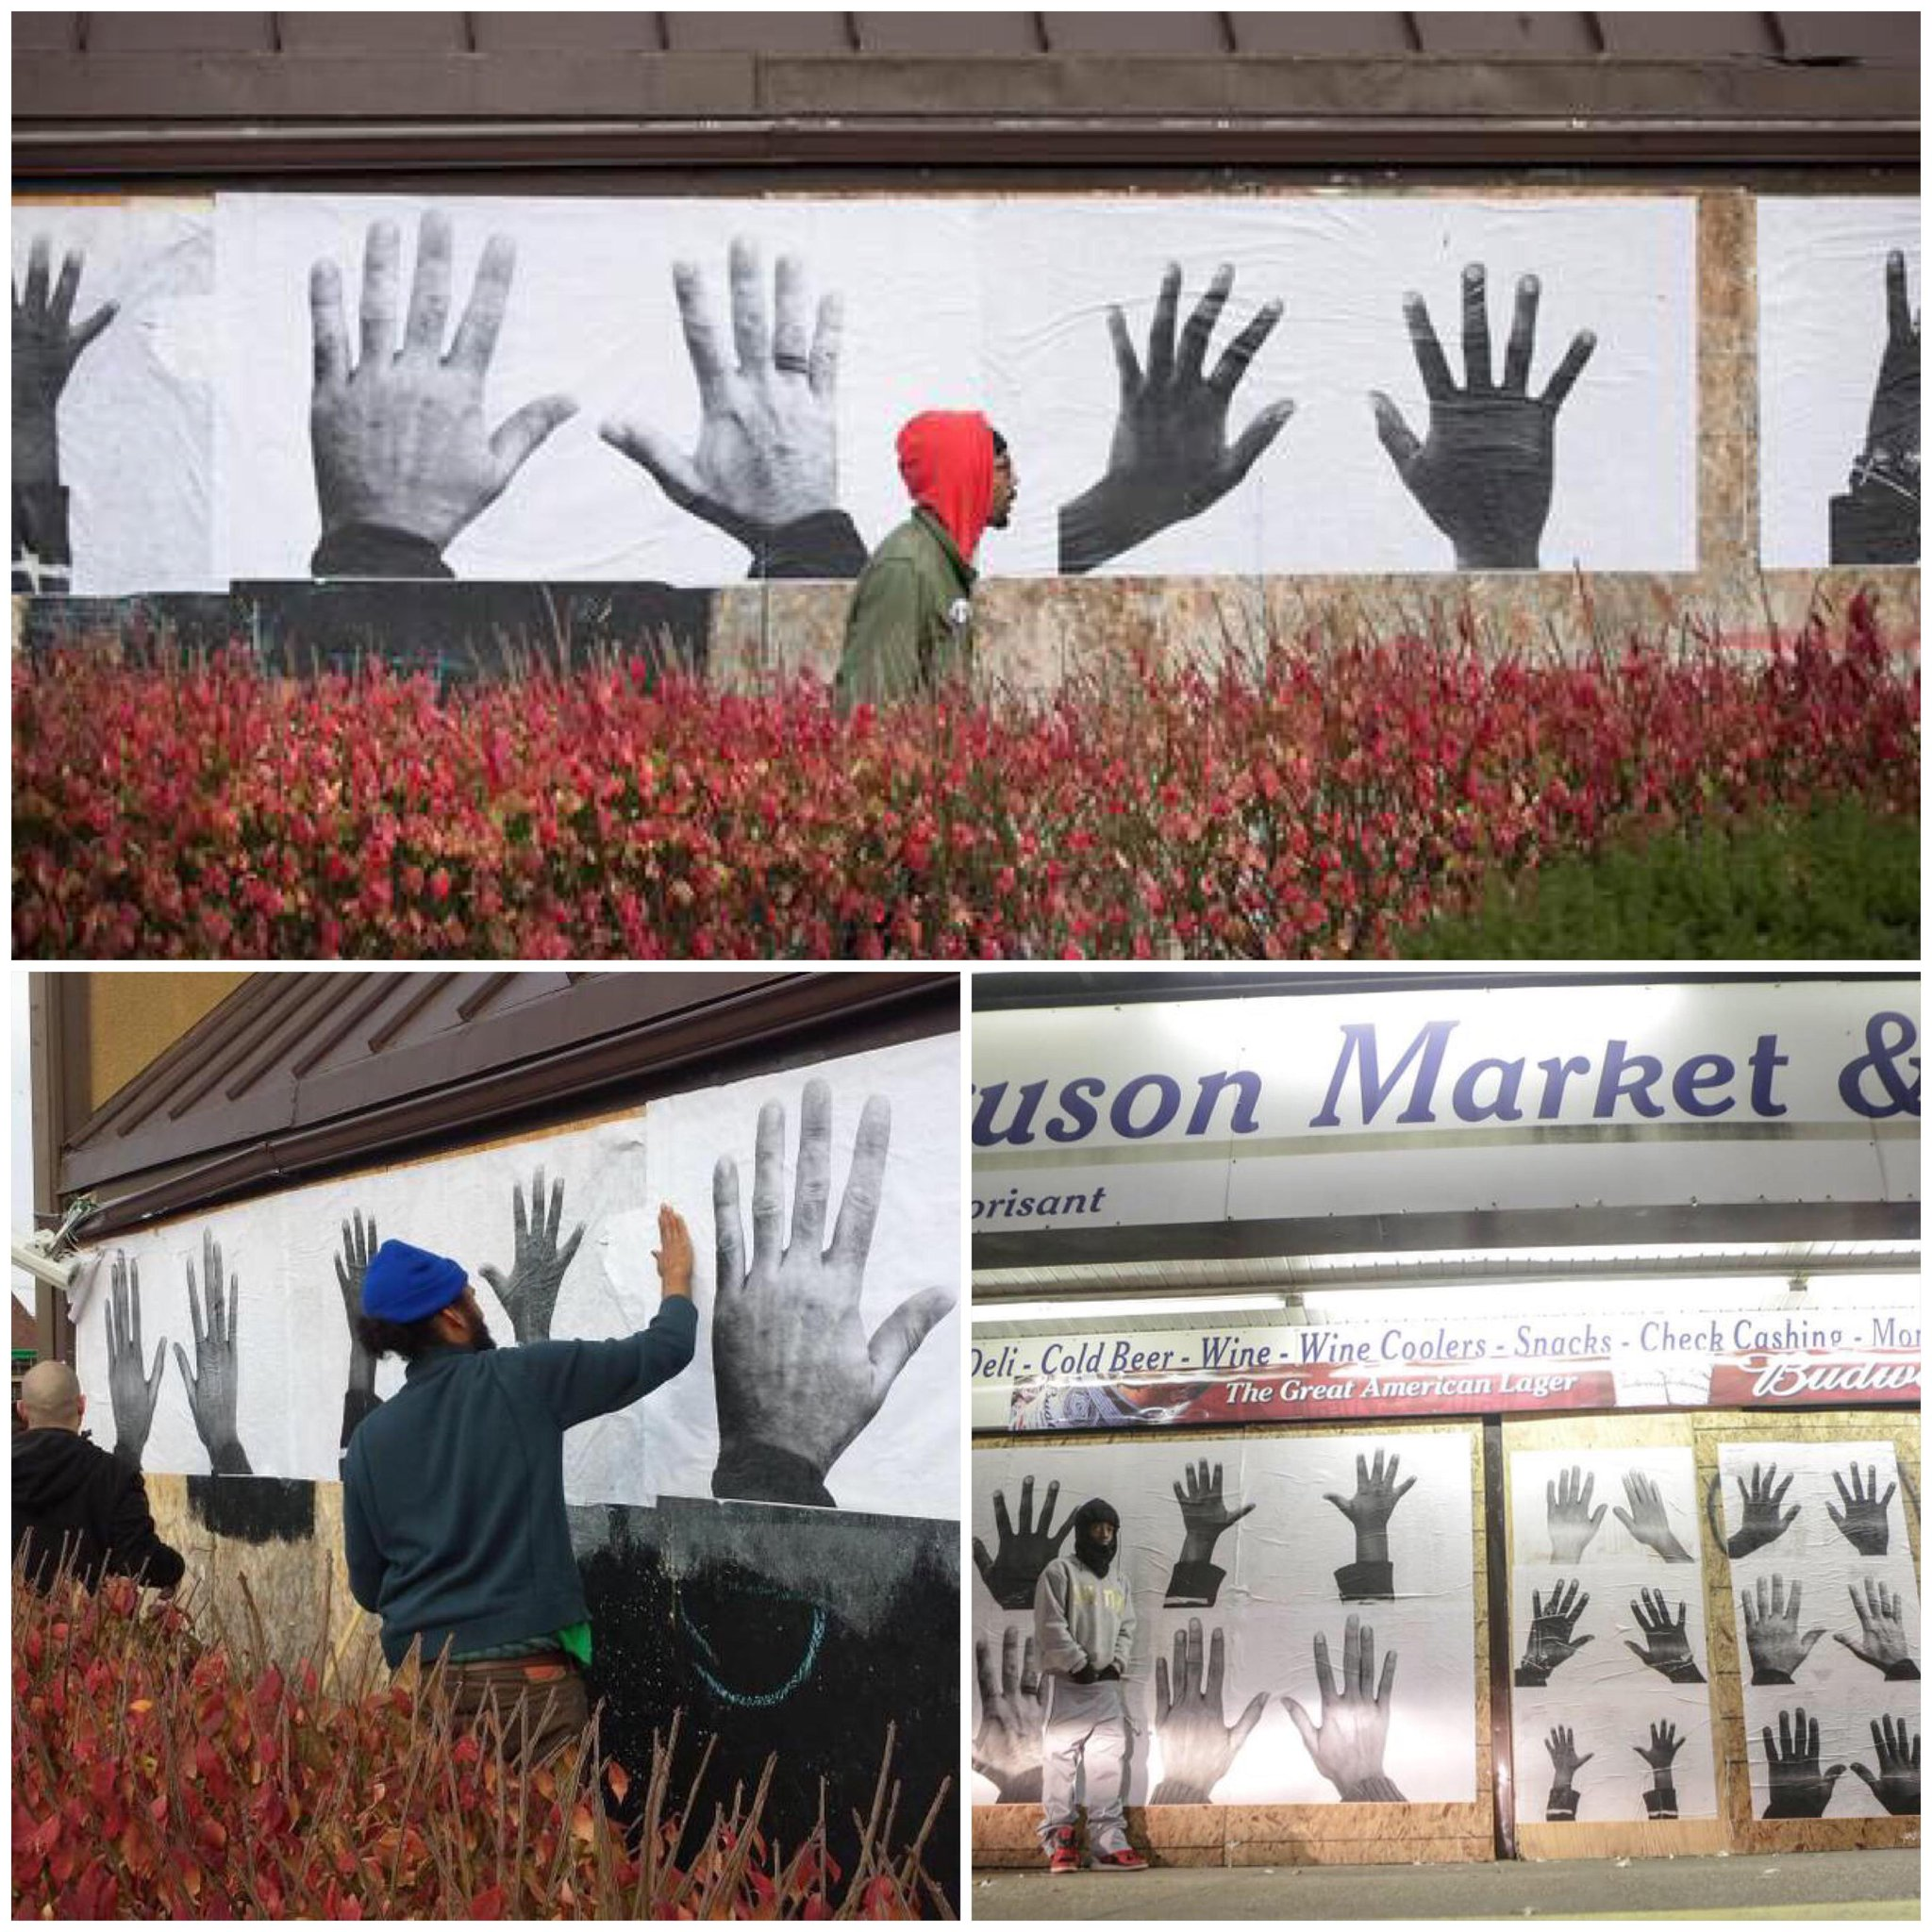 RT @sonsandbros: POWERFUL: Artist blew up photos of the protesters' hands and posted them around #Ferguson #AllHandsOnDeck http://t.co/wY4Q…